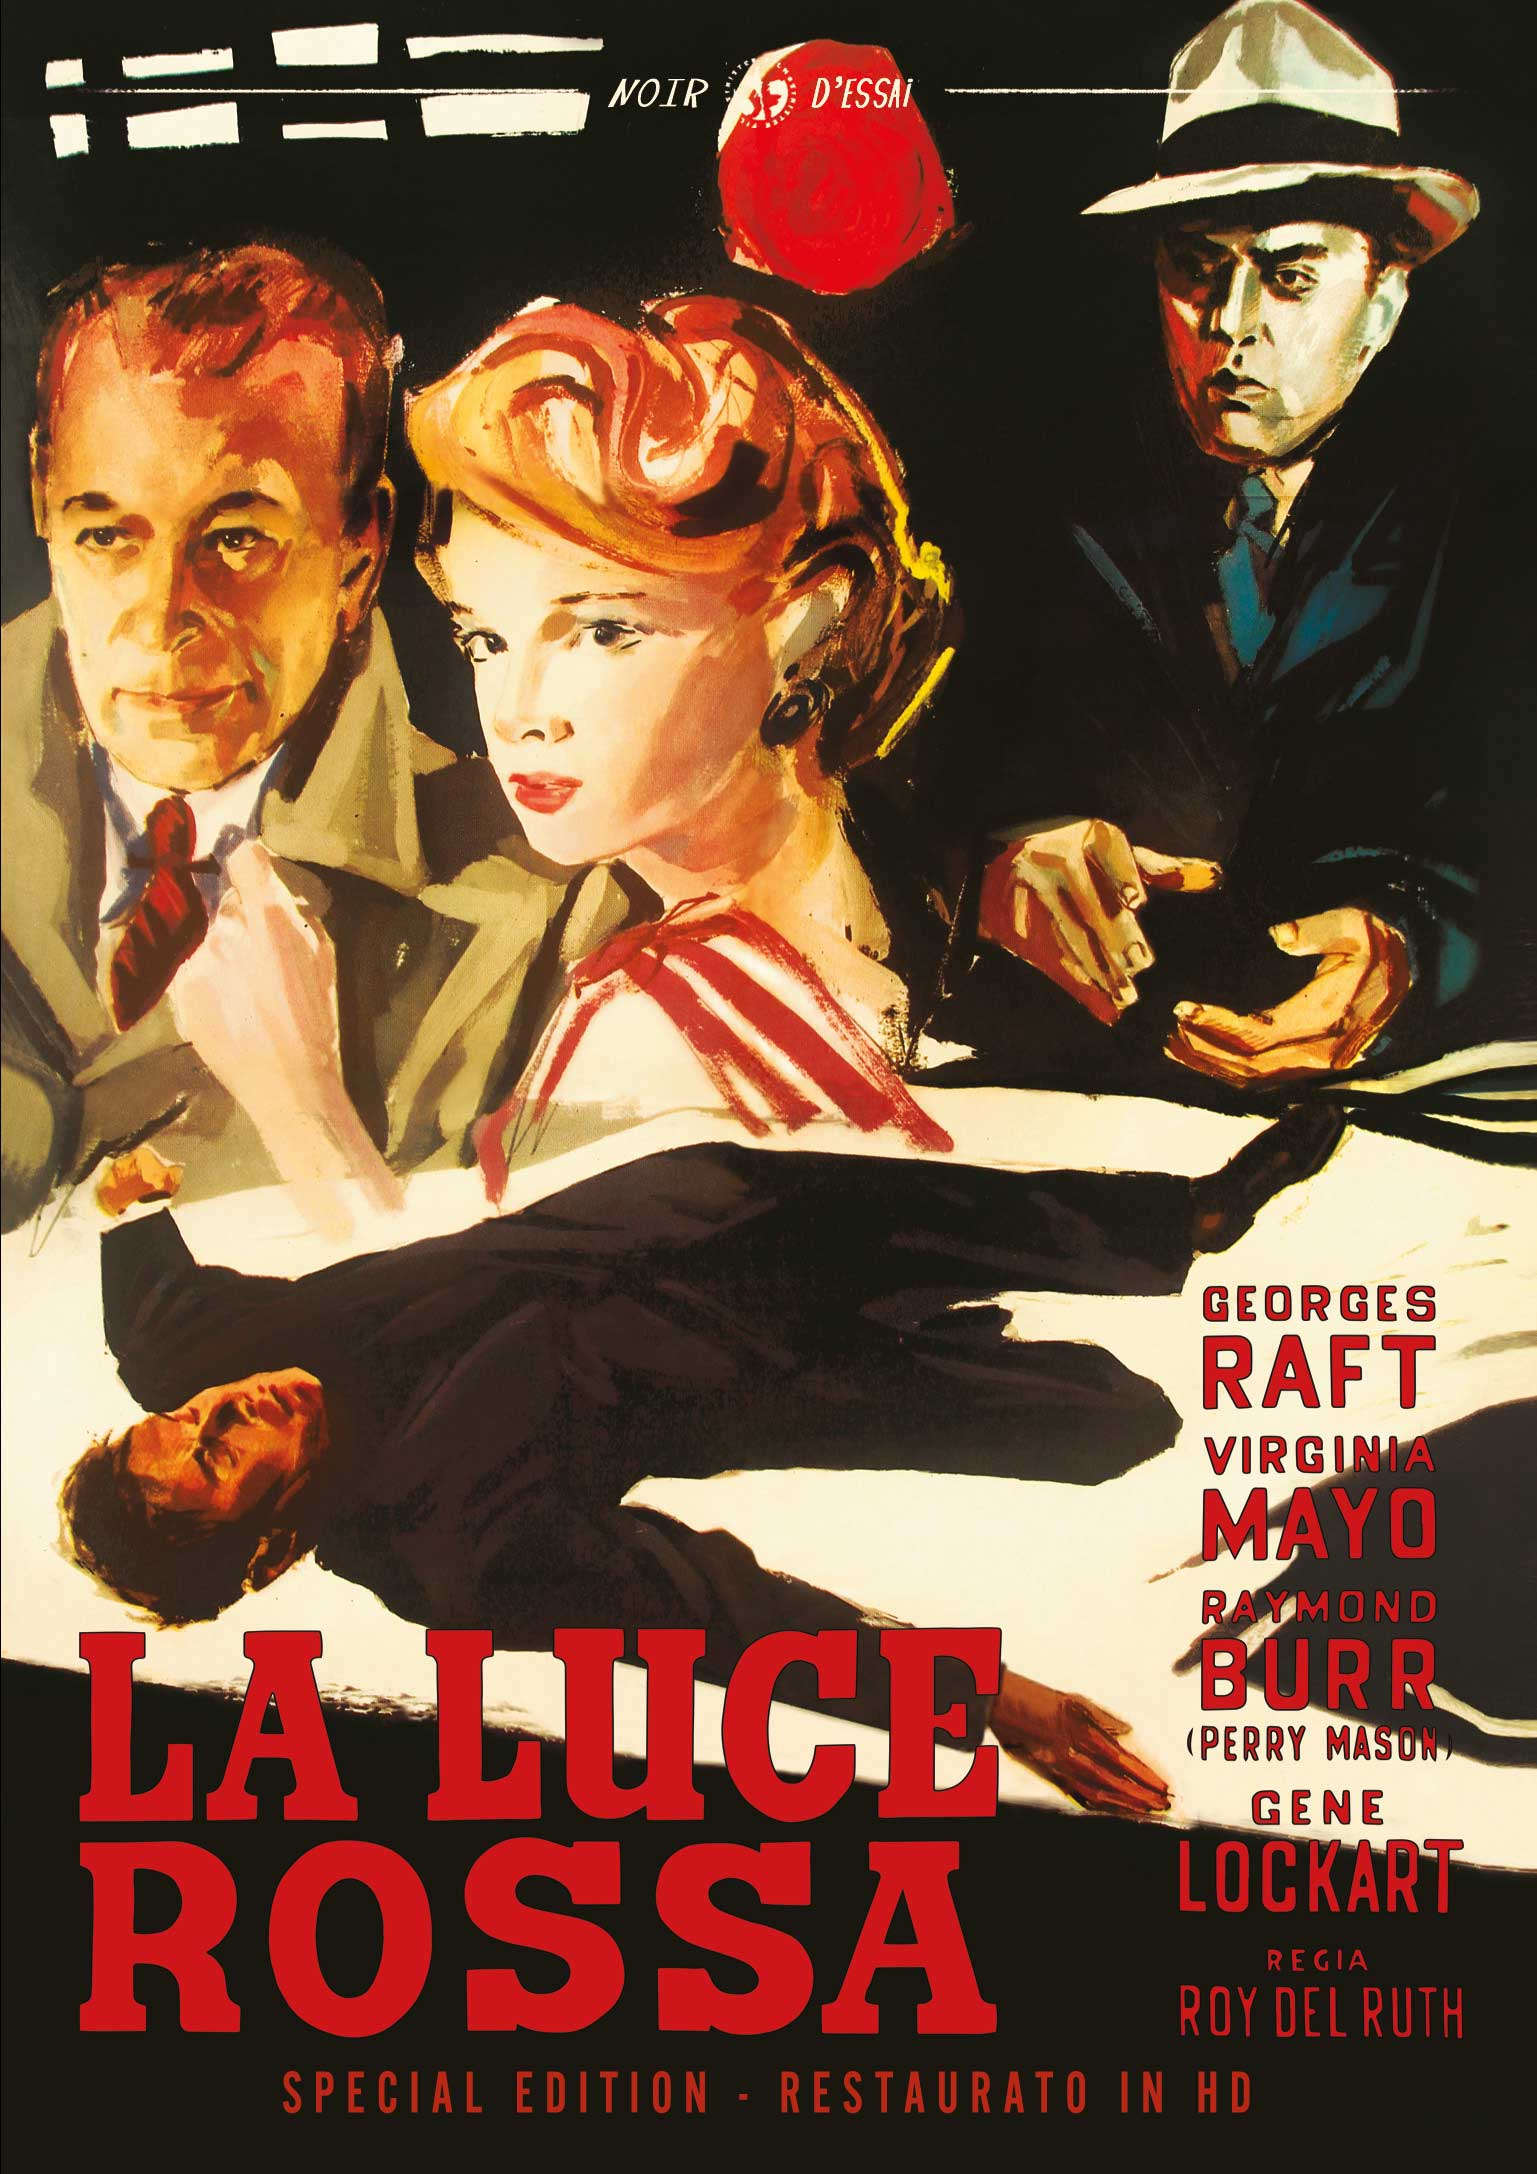 LA LUCE ROSSA (SPECIAL EDITION) (RESTAURATO IN HD) (DVD)